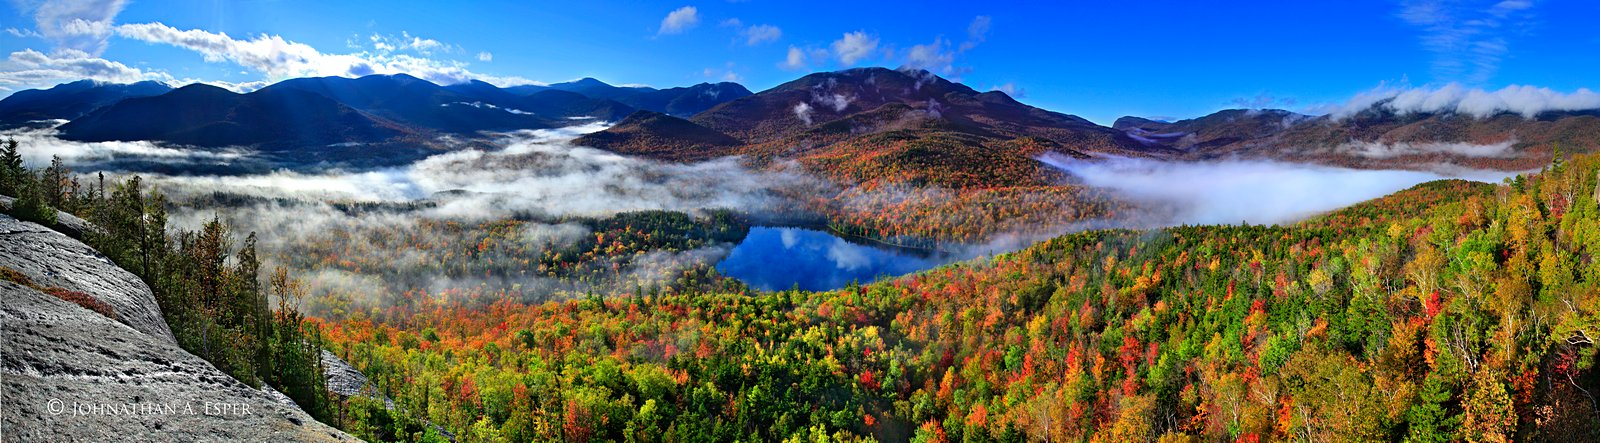 Upstate New York Fall Hd Wallpaper Mt Jo Pano Of Heart Lake And Valley Fog Wildernesscapes